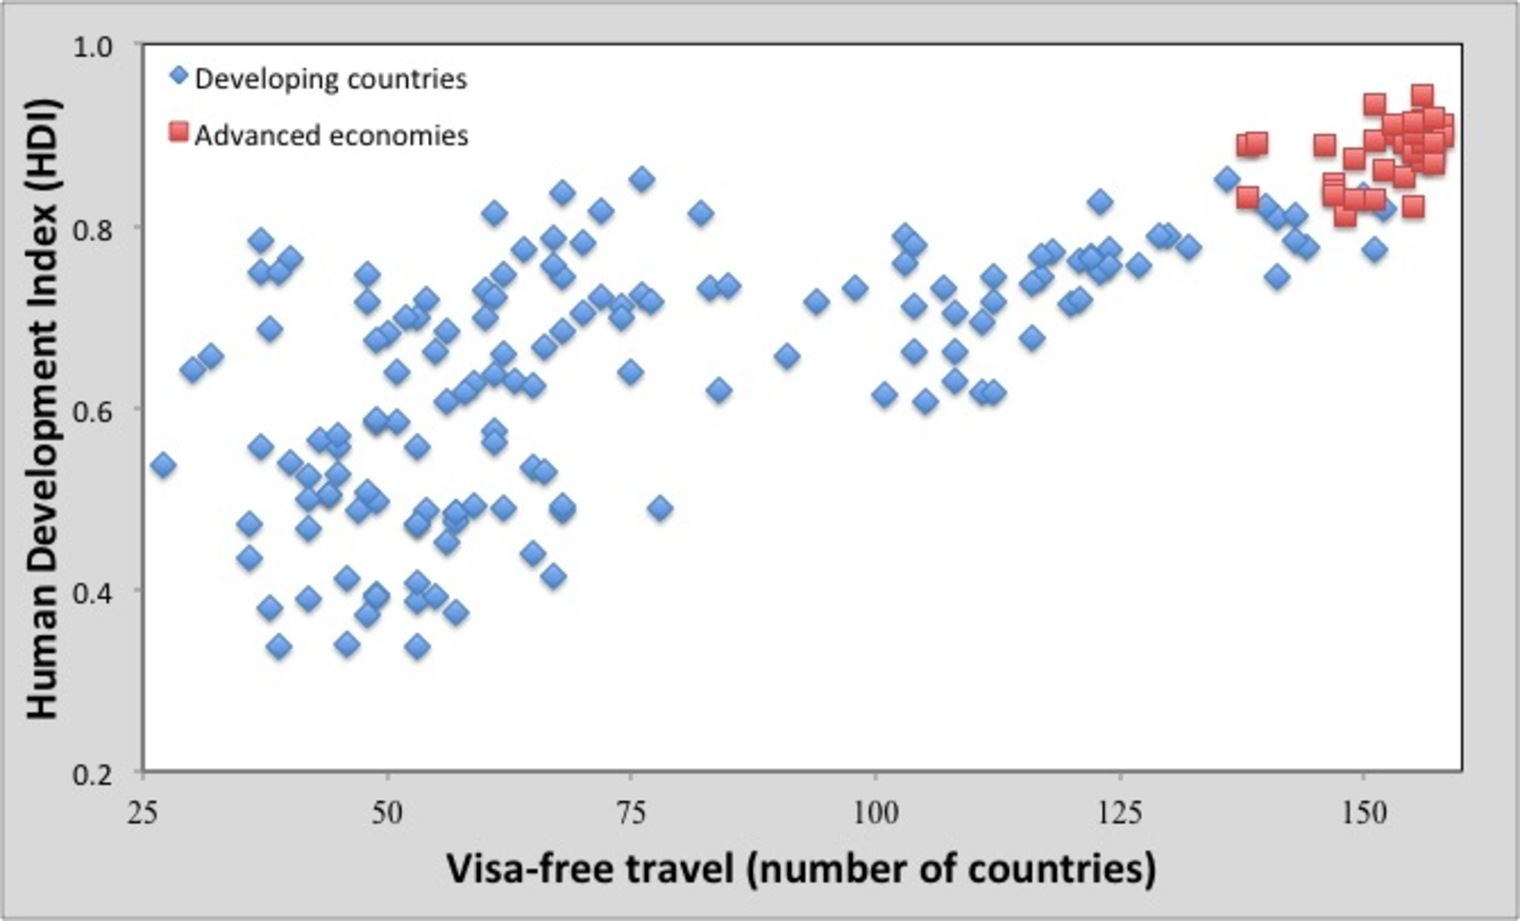 Immigration legislation restricts movement by scientists from developing countries much more than those from advanced economies.